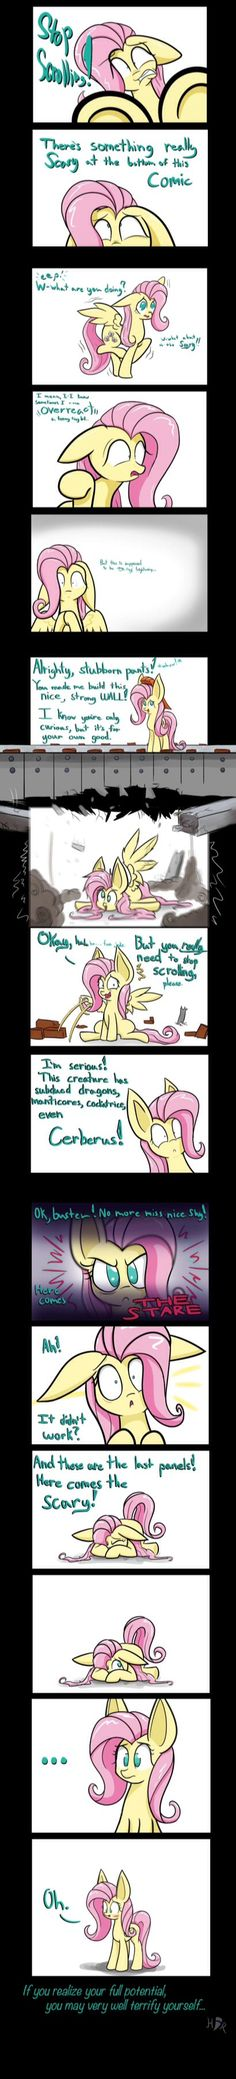 Life lesson thanks fluttershy